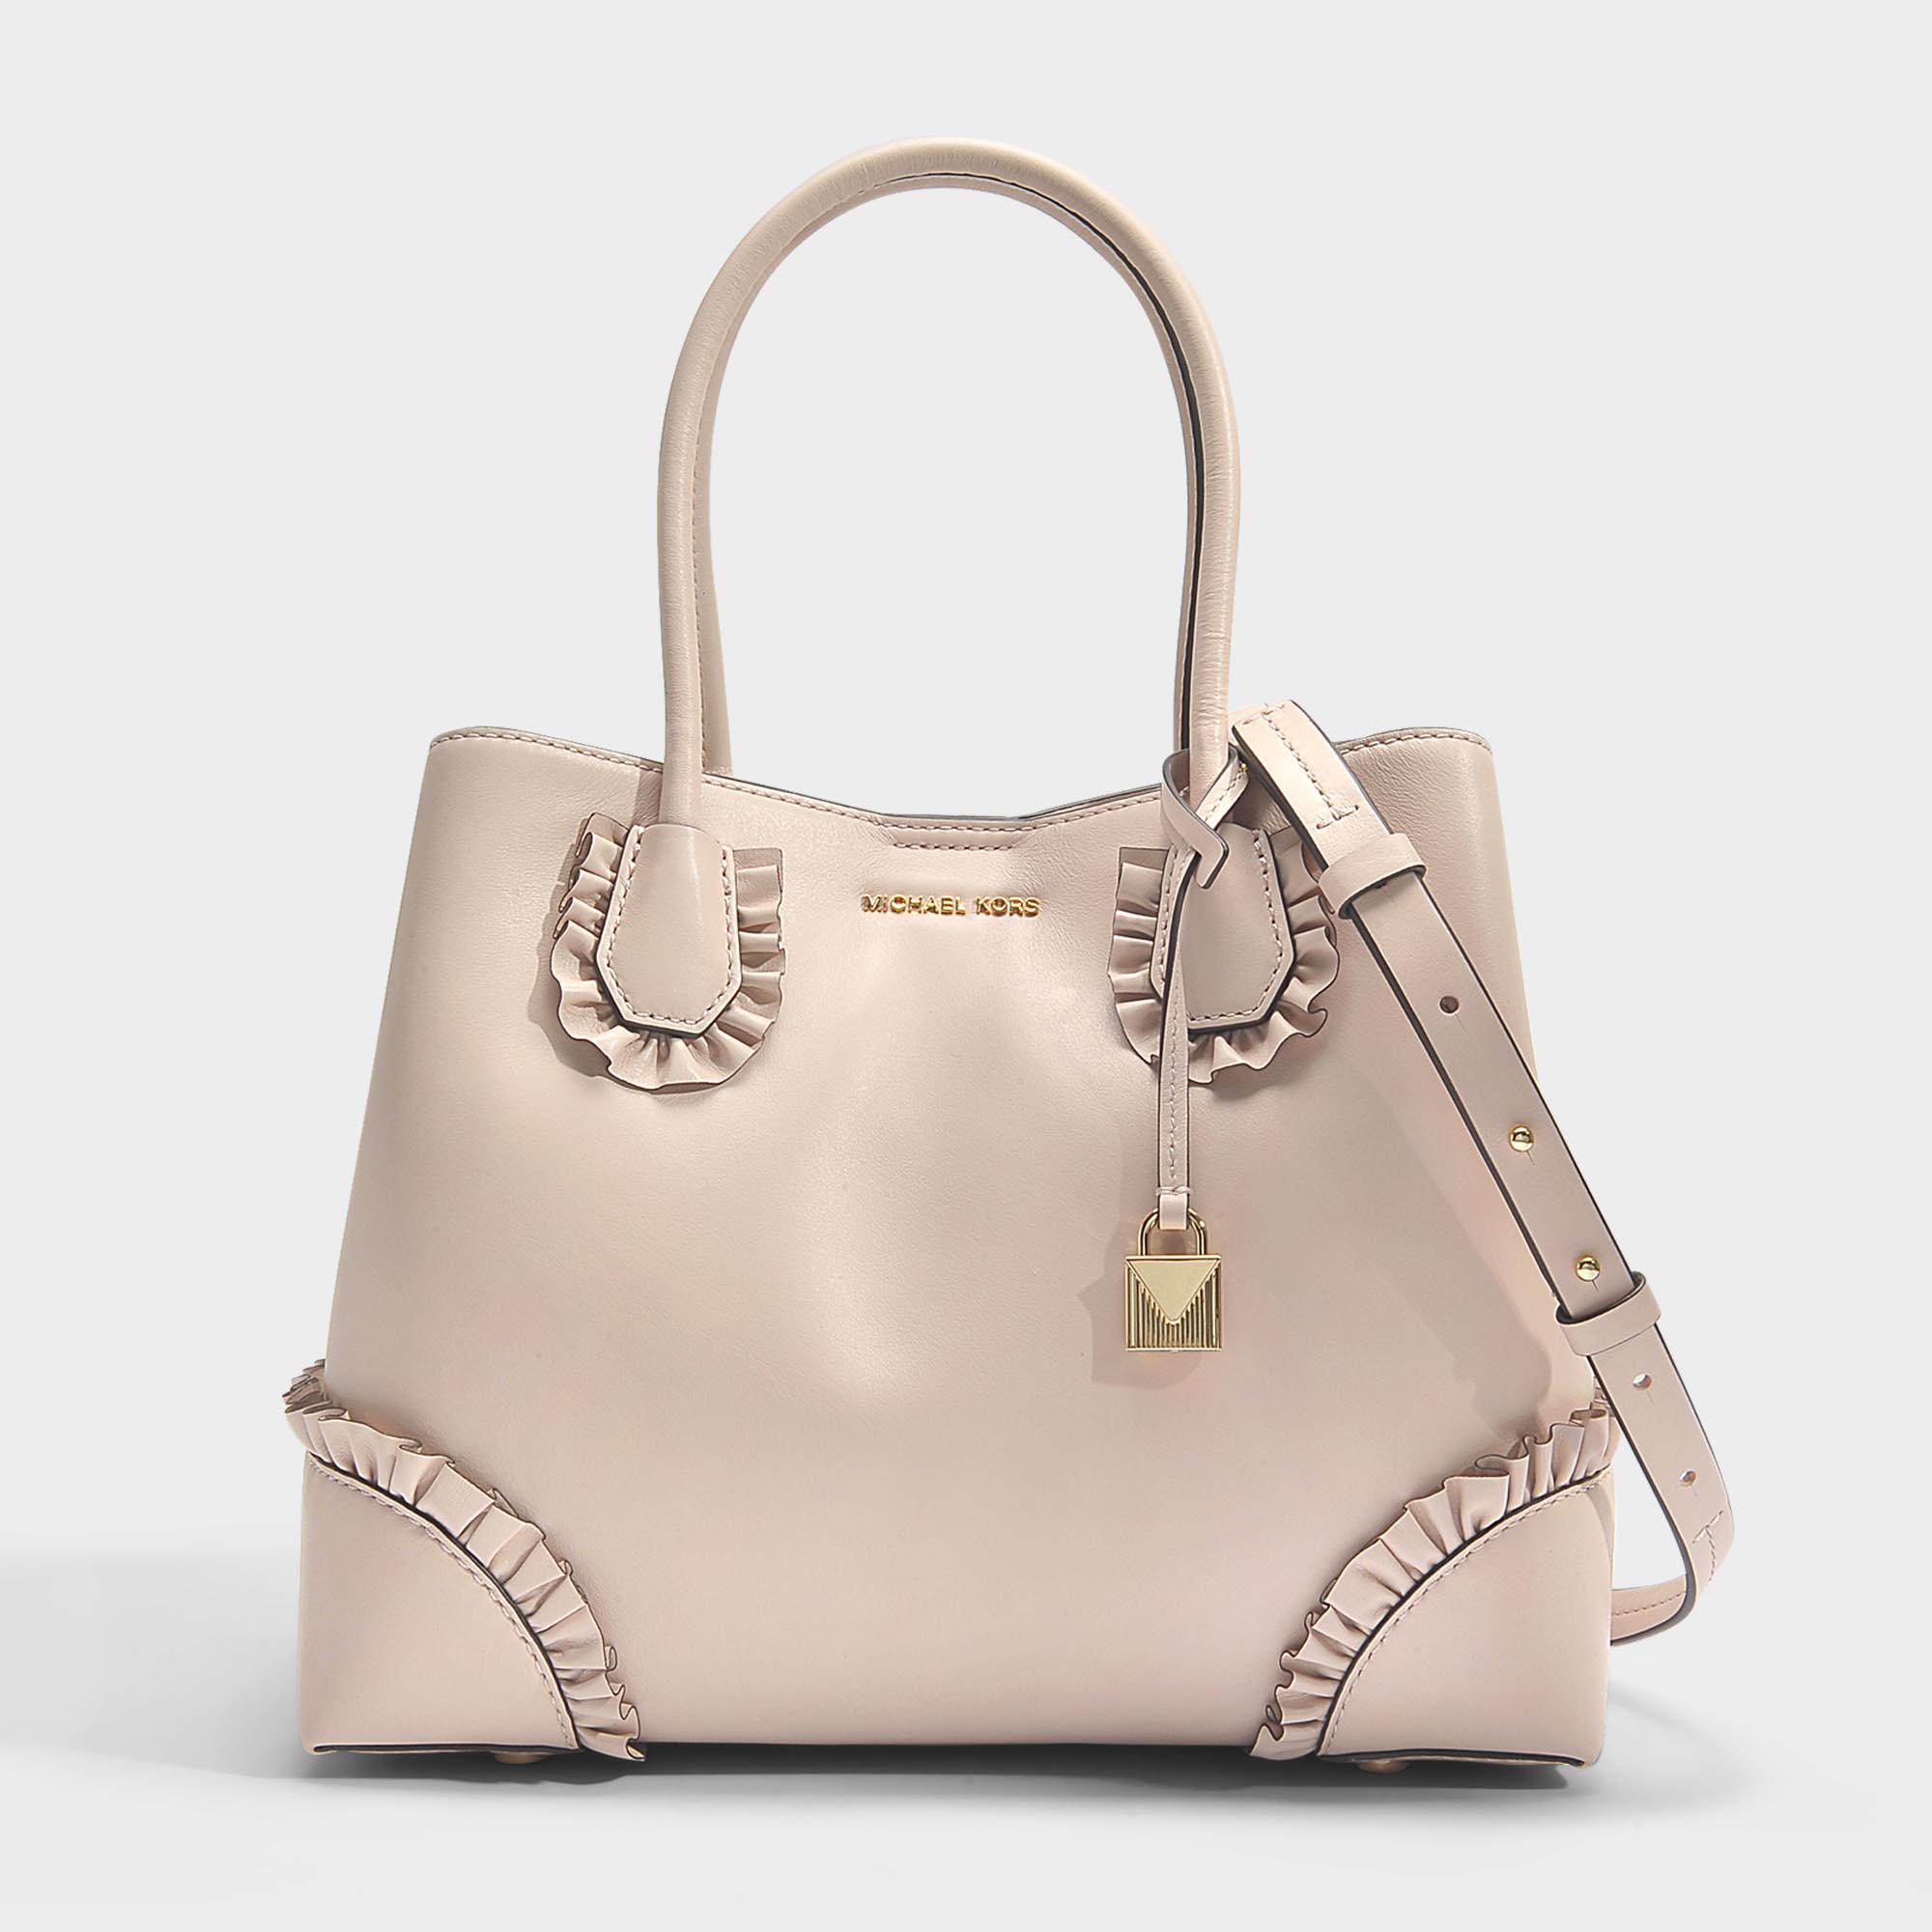 Mercer Gallery Center Zip Medium Tote Bag with Ruffles in Soft Pink Polished Leather Michael Michael Kors RX1iDvJ7r